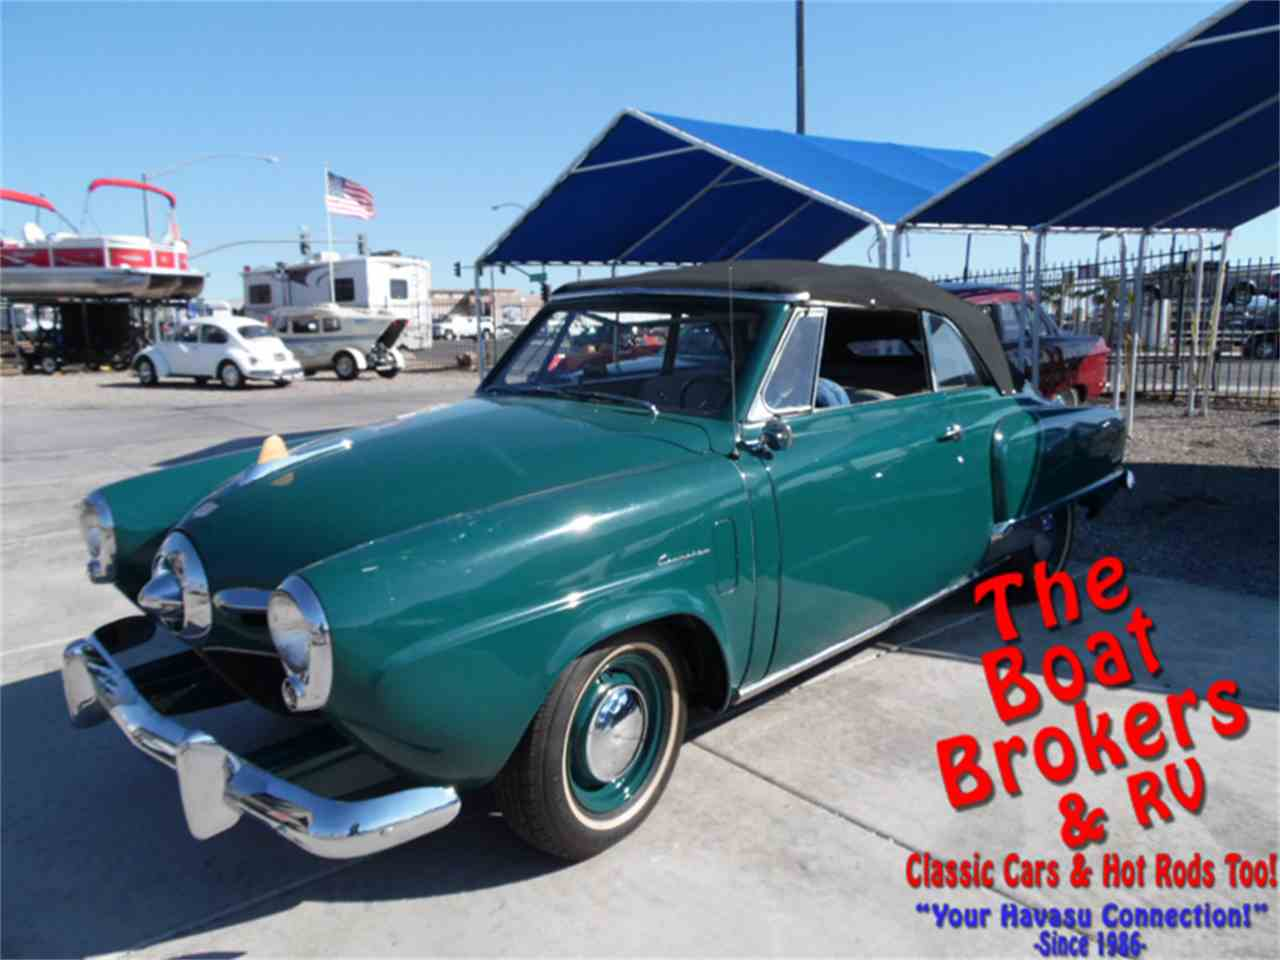 Auto Dealership For Sale Arizona: 1950 Studebaker Champion Regal Deluxe Convertible For Sale